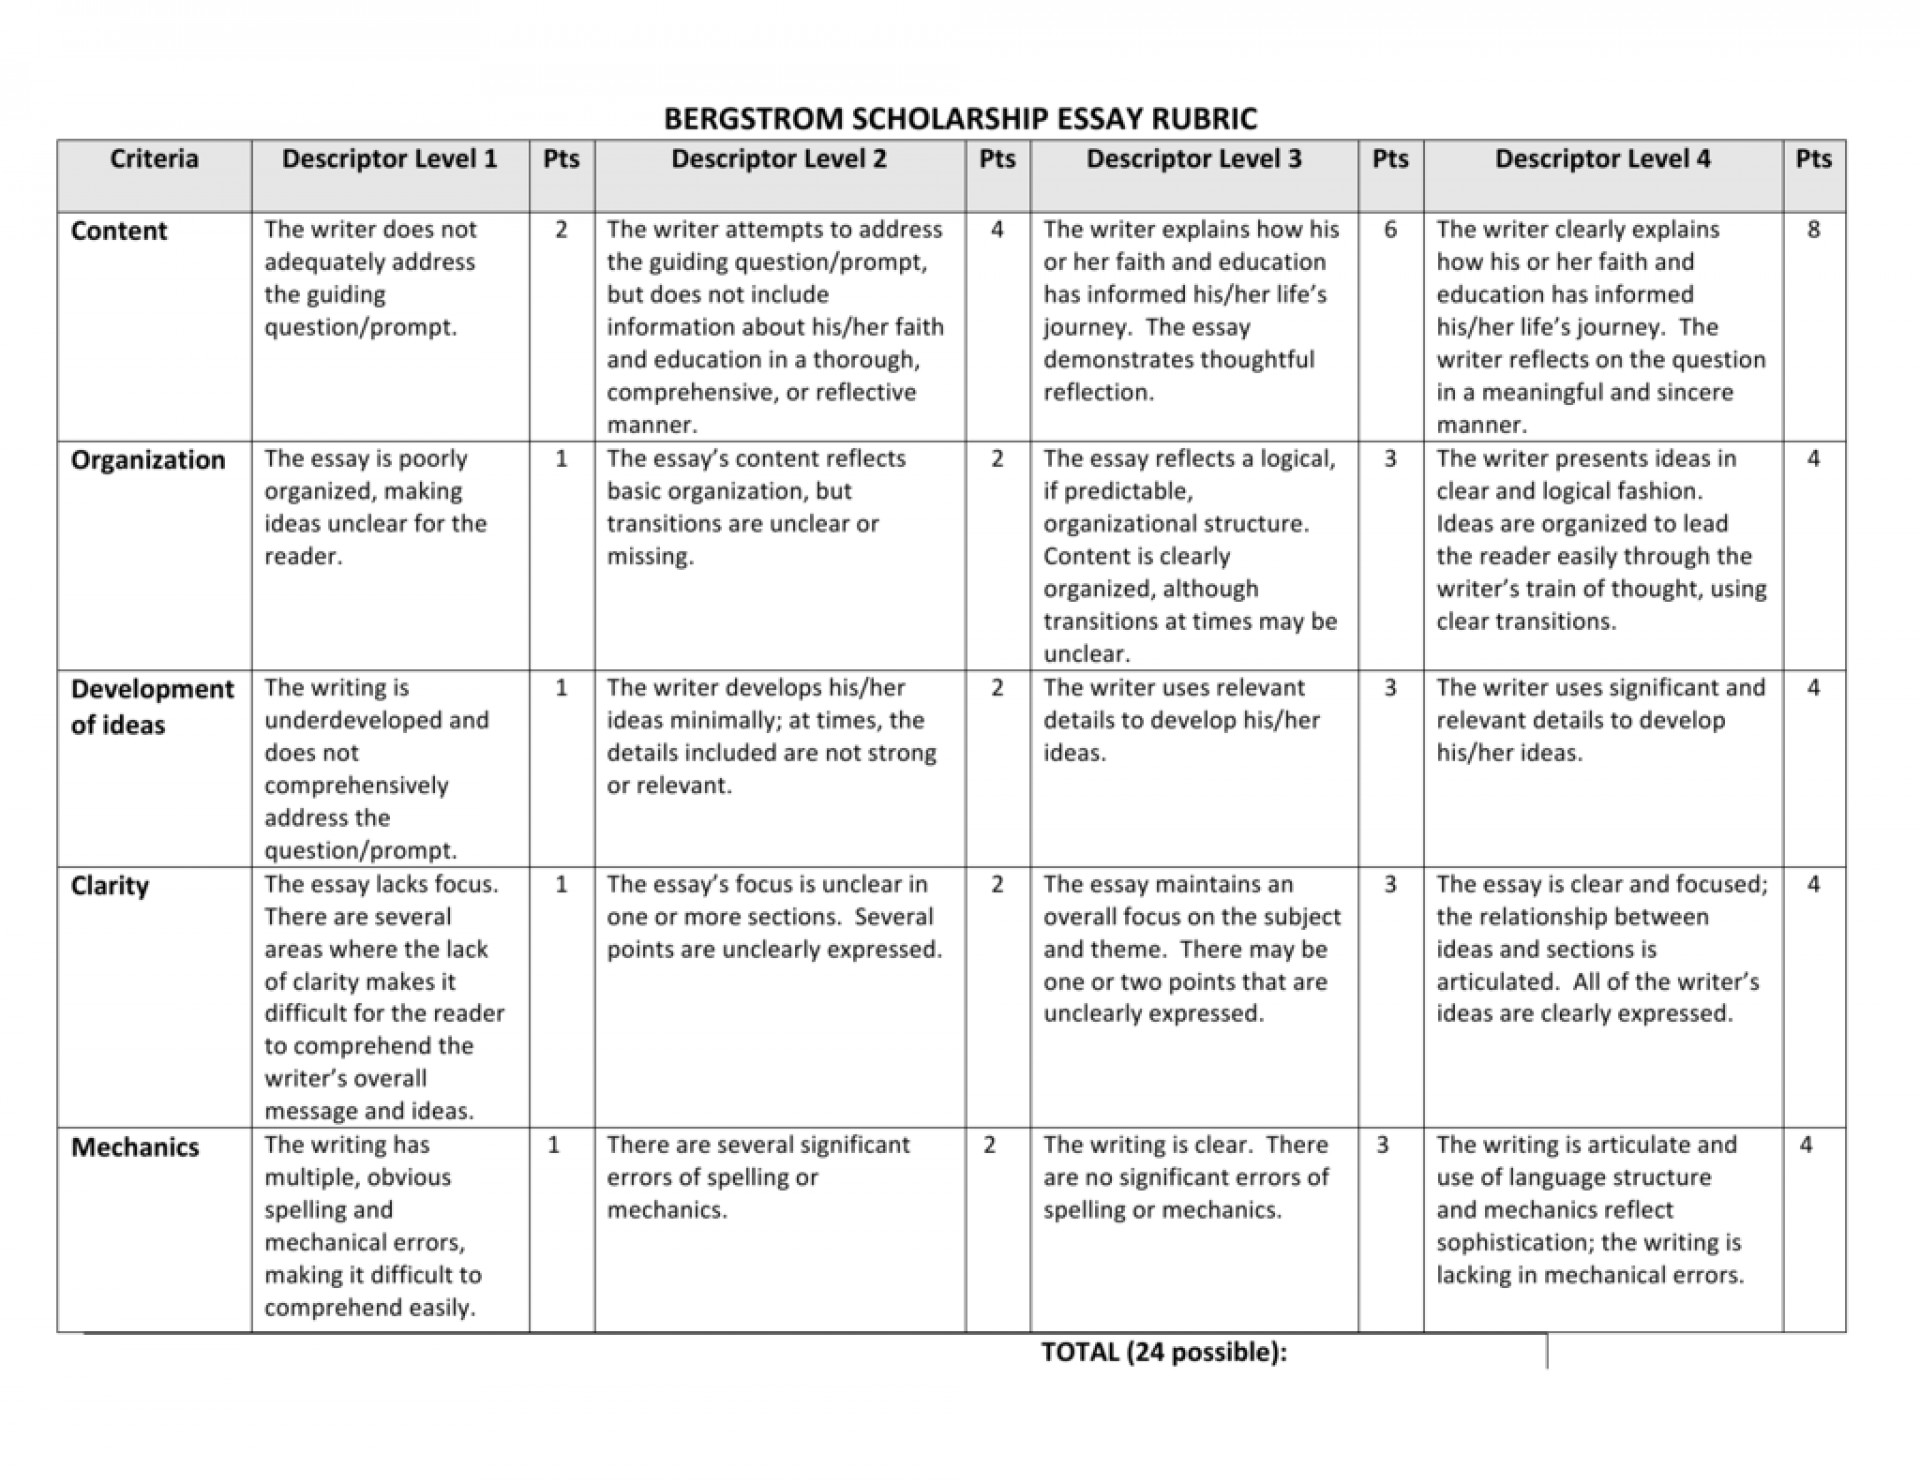 012 008364999 1 Essay Example Reflective Marvelous Rubric Week 2 Guidelines With Scoring Marking Assessment 1920